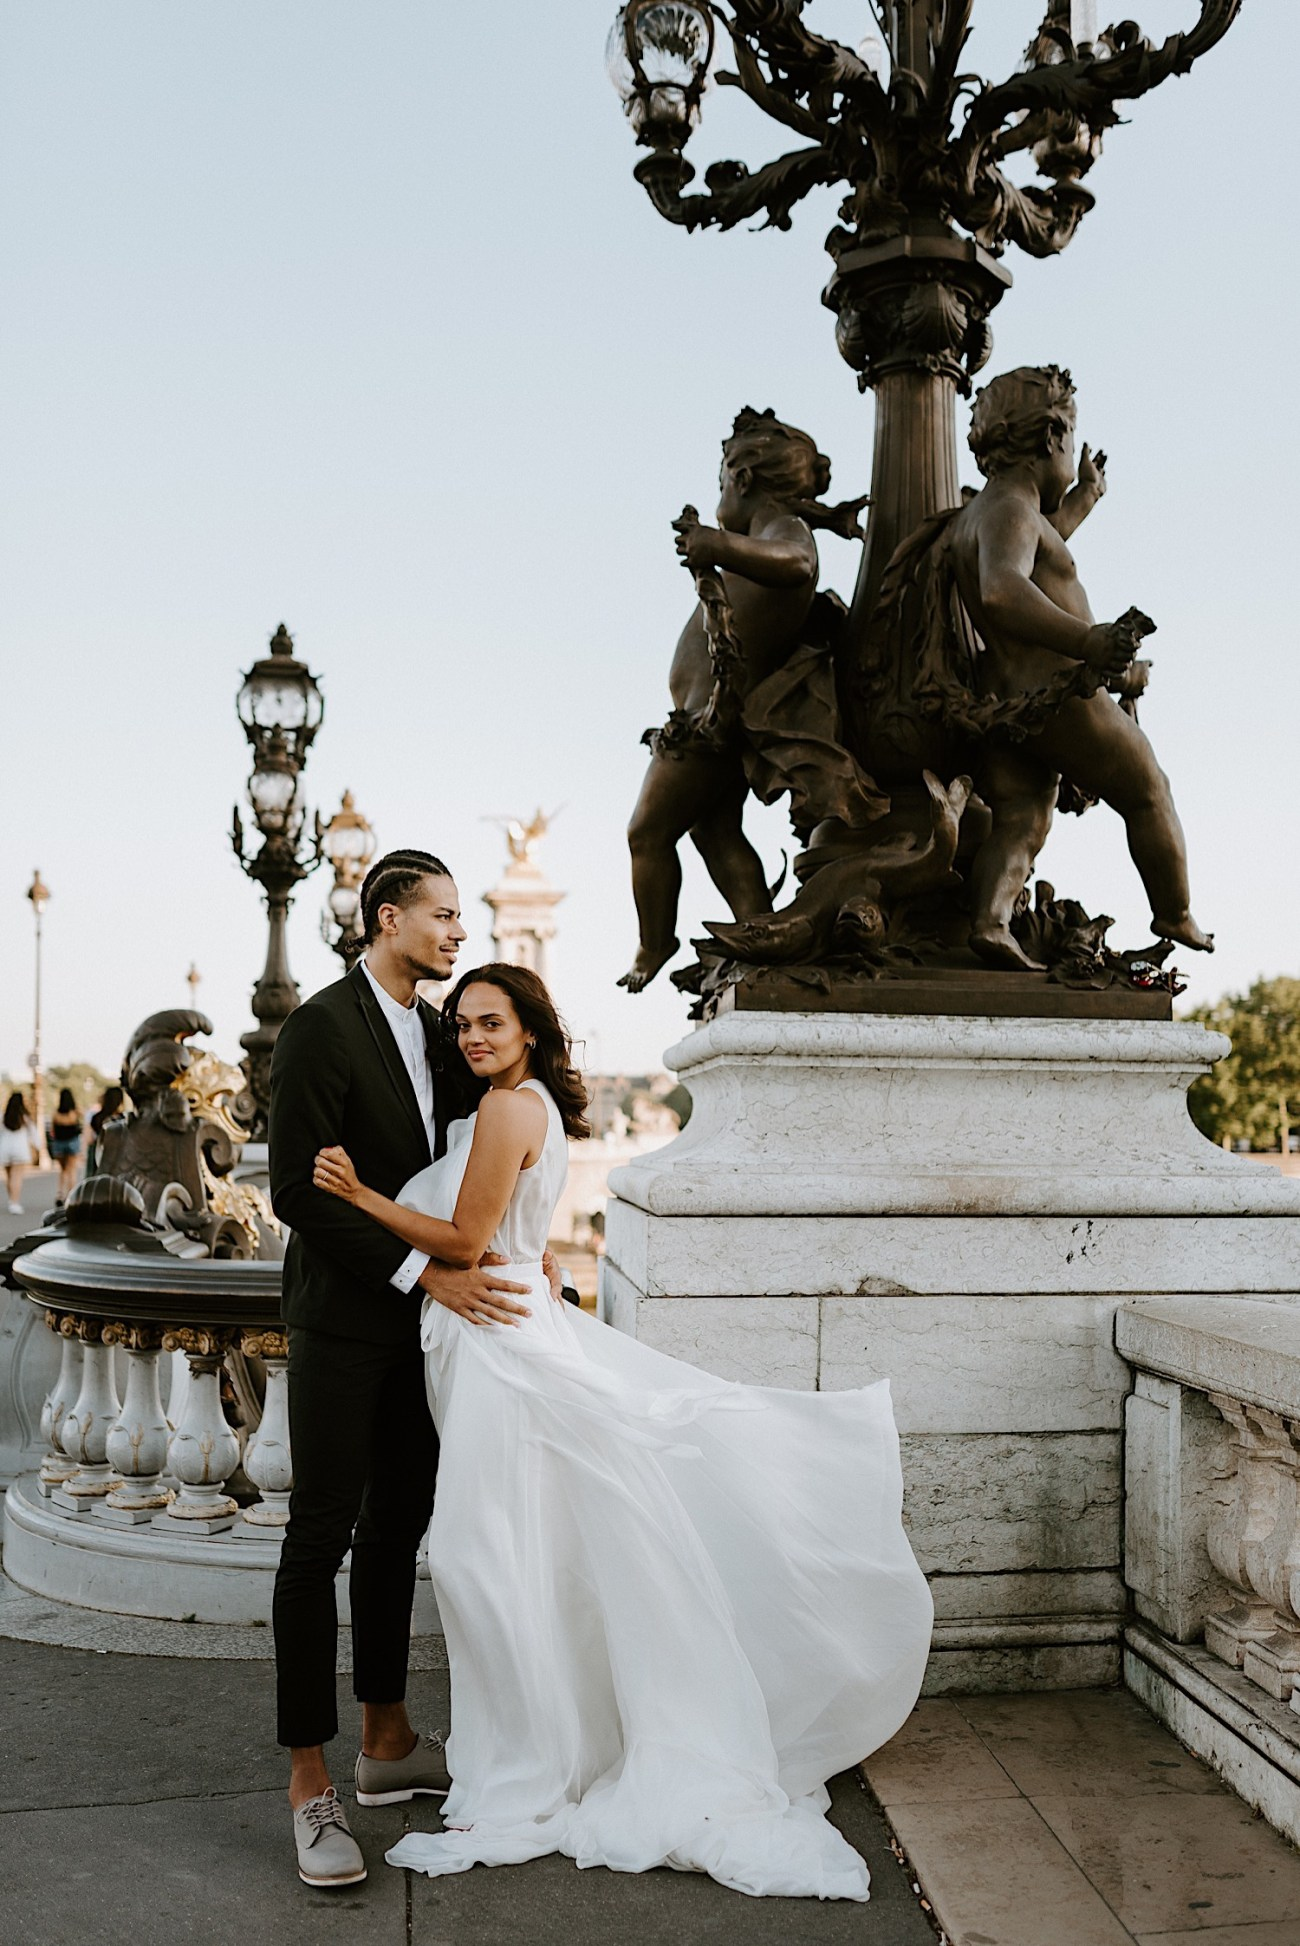 Paris Wedding Photos Paris Wedding Photographer Paris Photographe De Marriage Pont Alexandre Wedding Photos Anais Possamai Photography 25